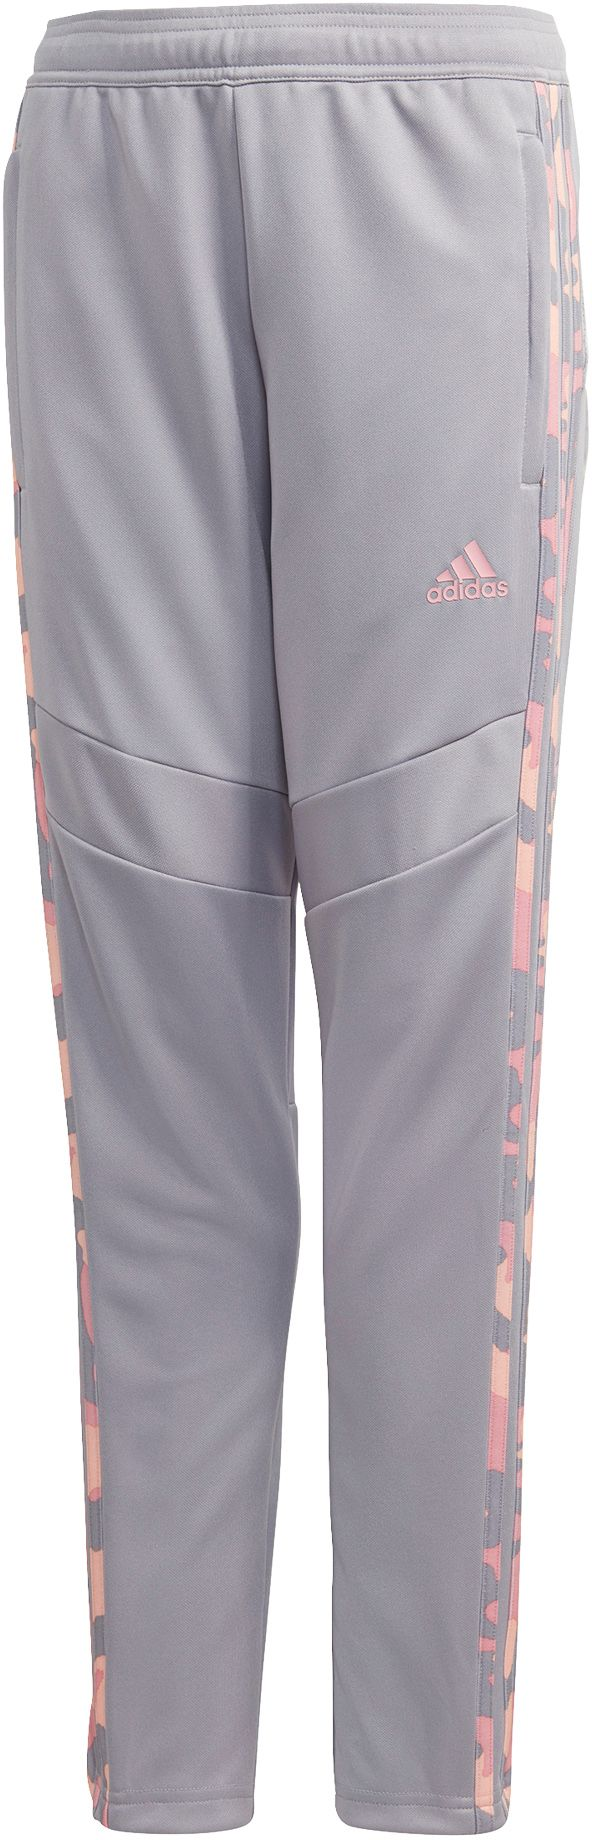 adidas Girls' Tiro 19 Training Pants, XXS, Gray